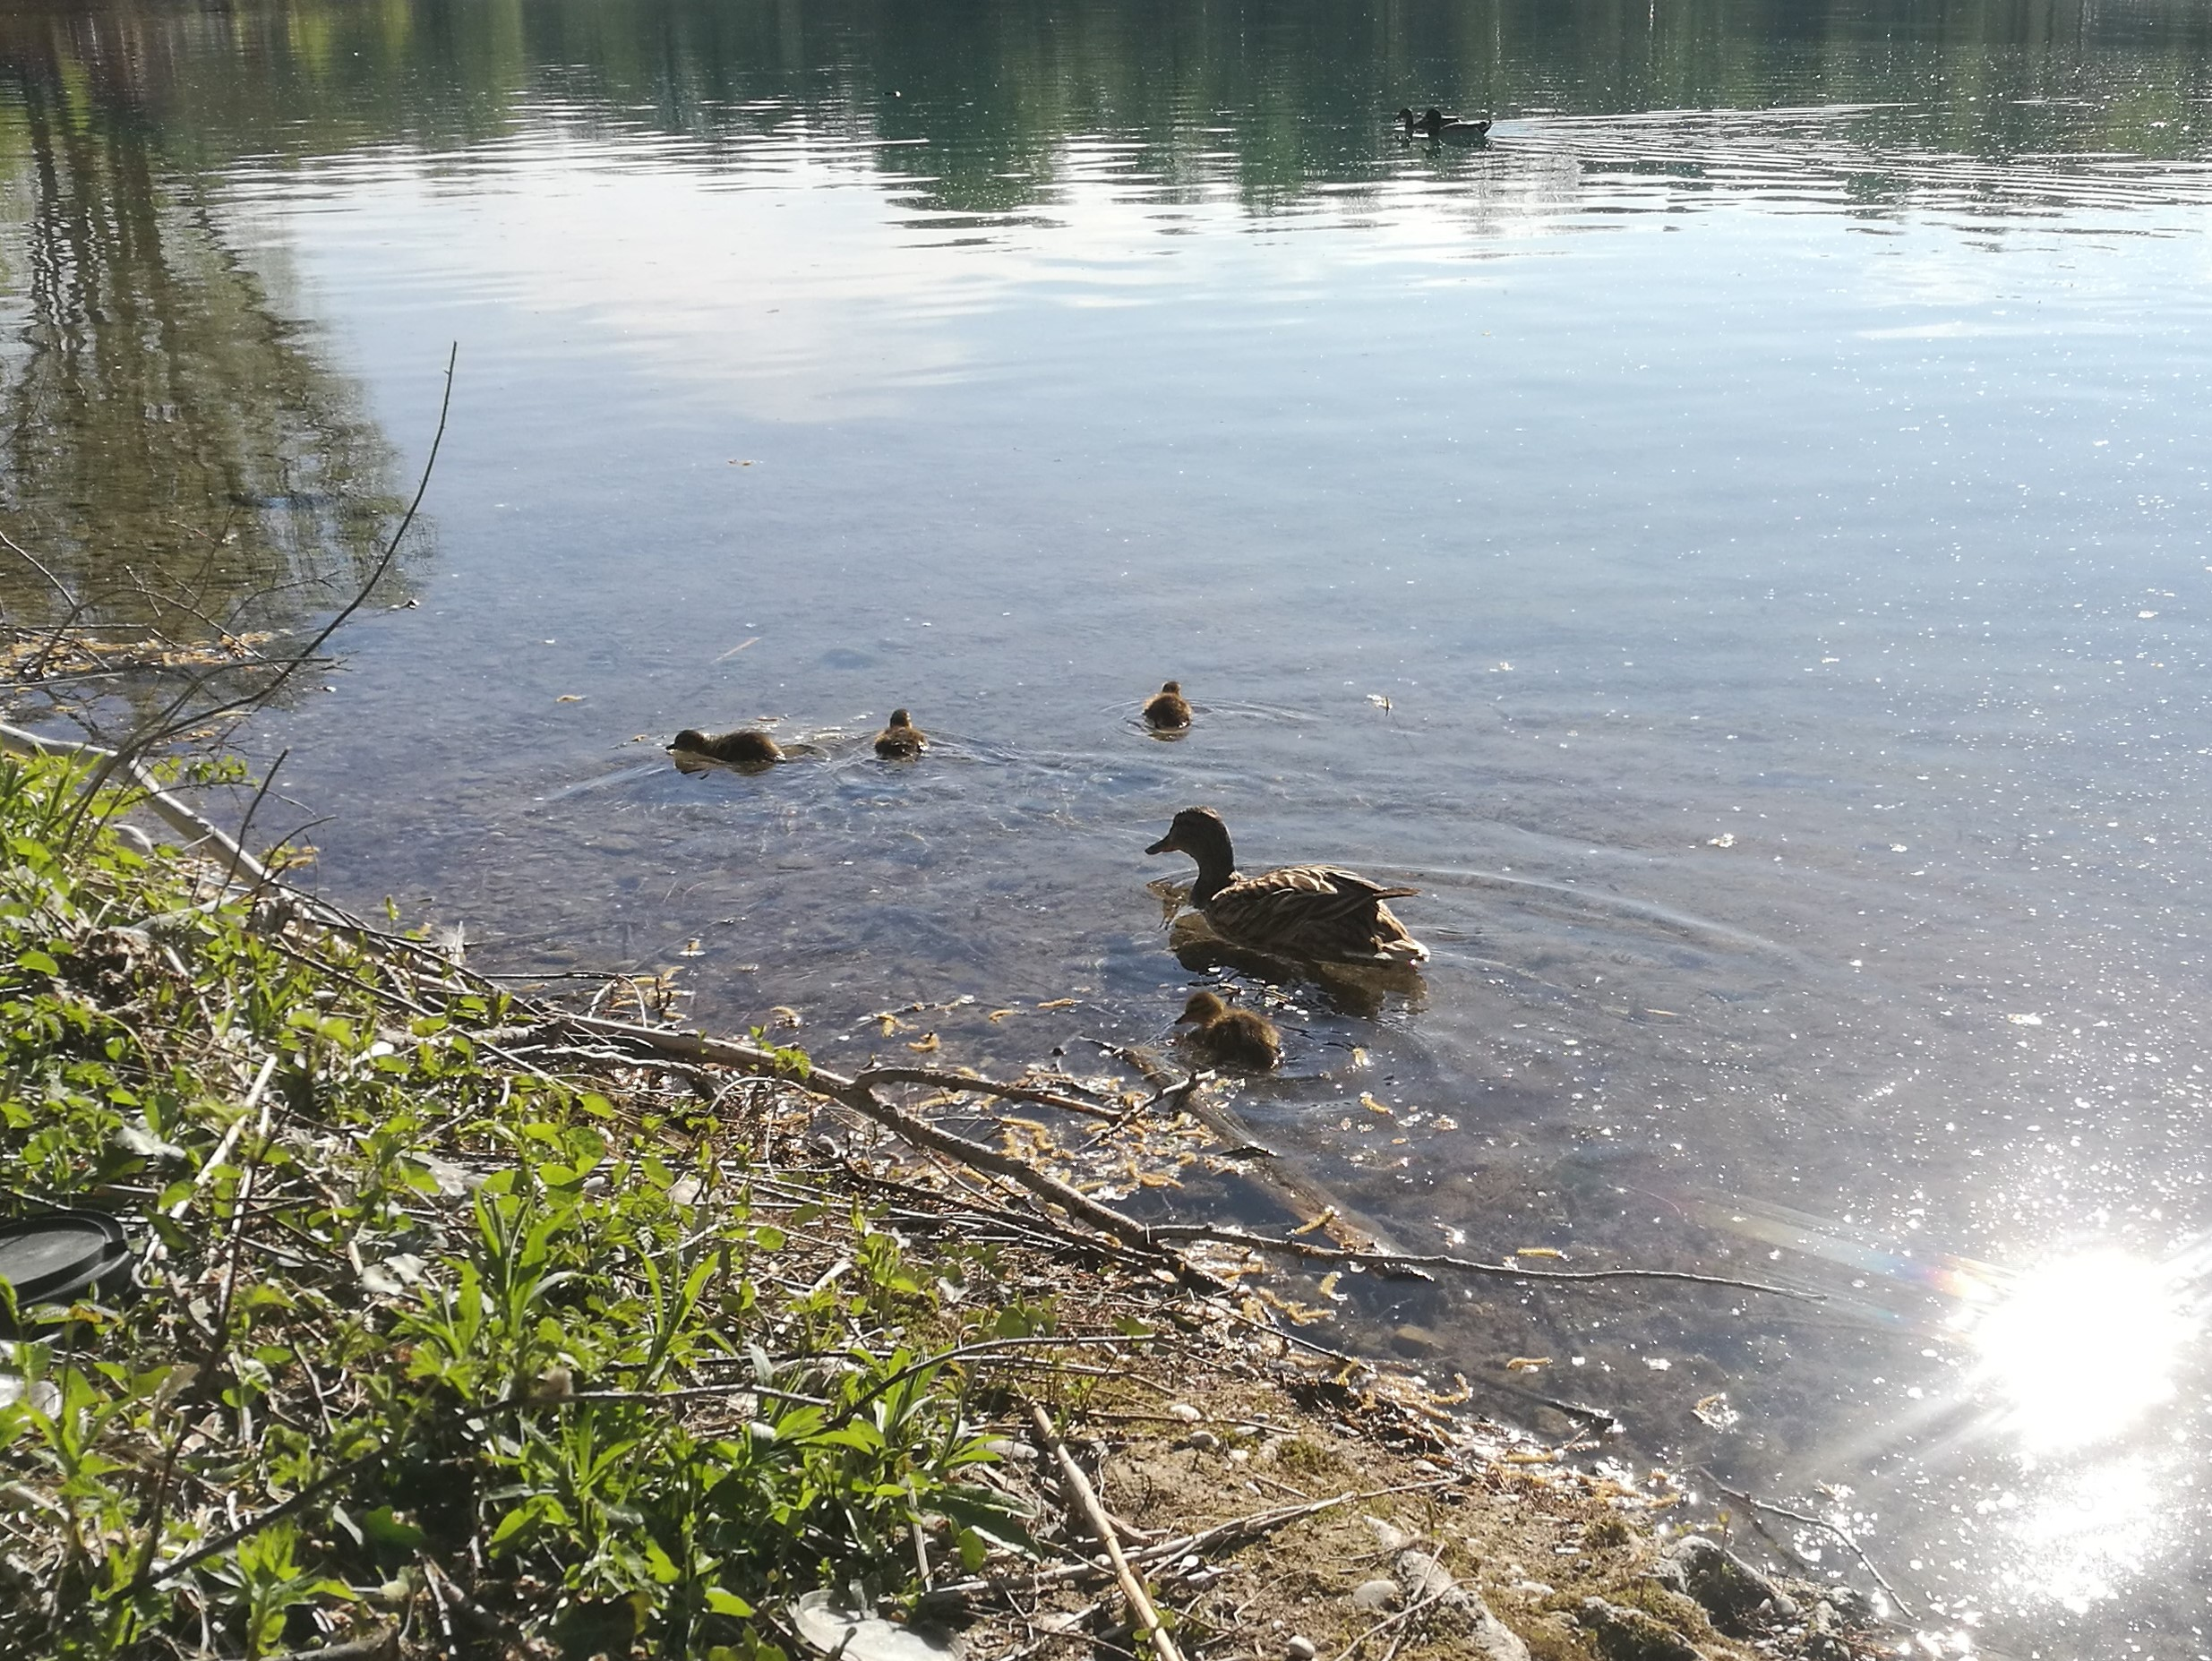 Mother duck with ducklings.